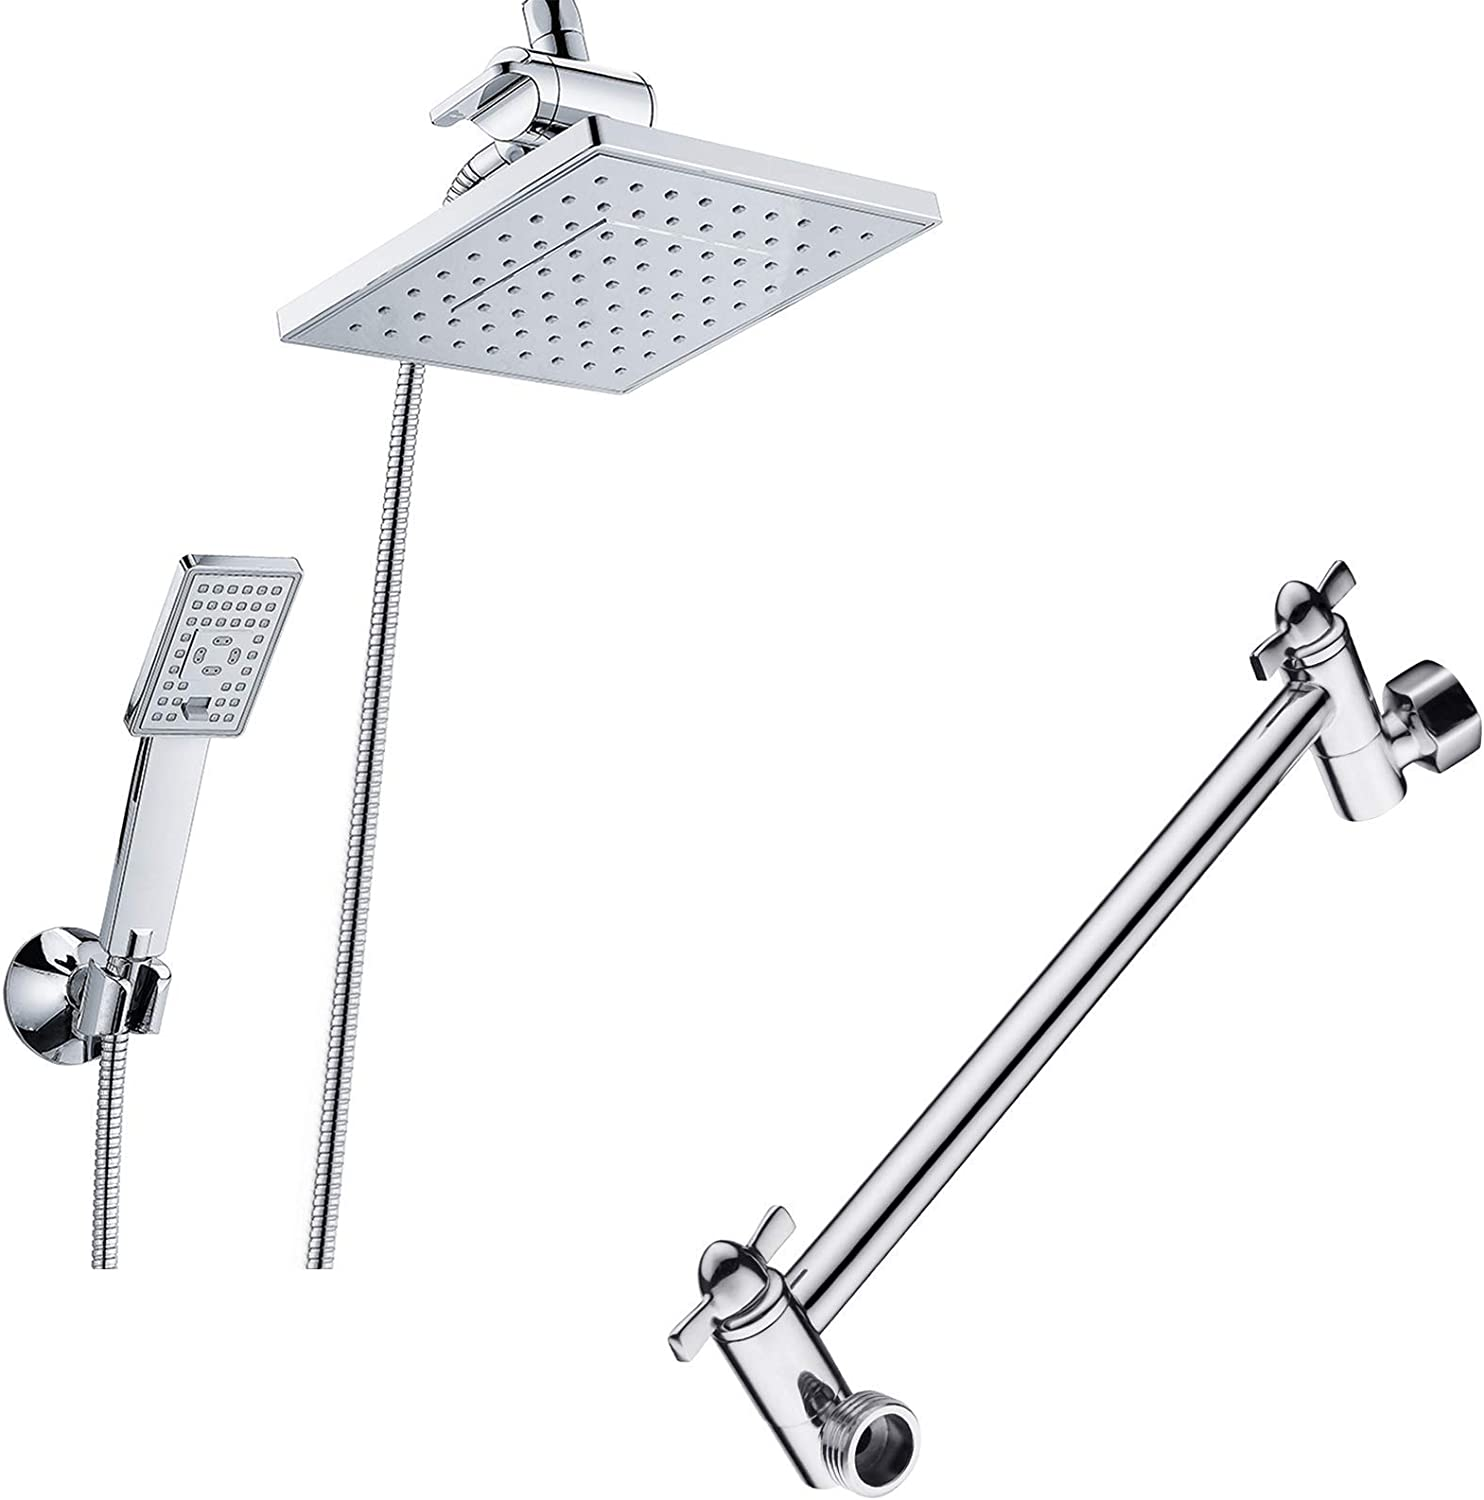 BRIGHT SHOWERS Rain Shower Head Handheld Includes Max 55% OFF Wal Spray with shopping